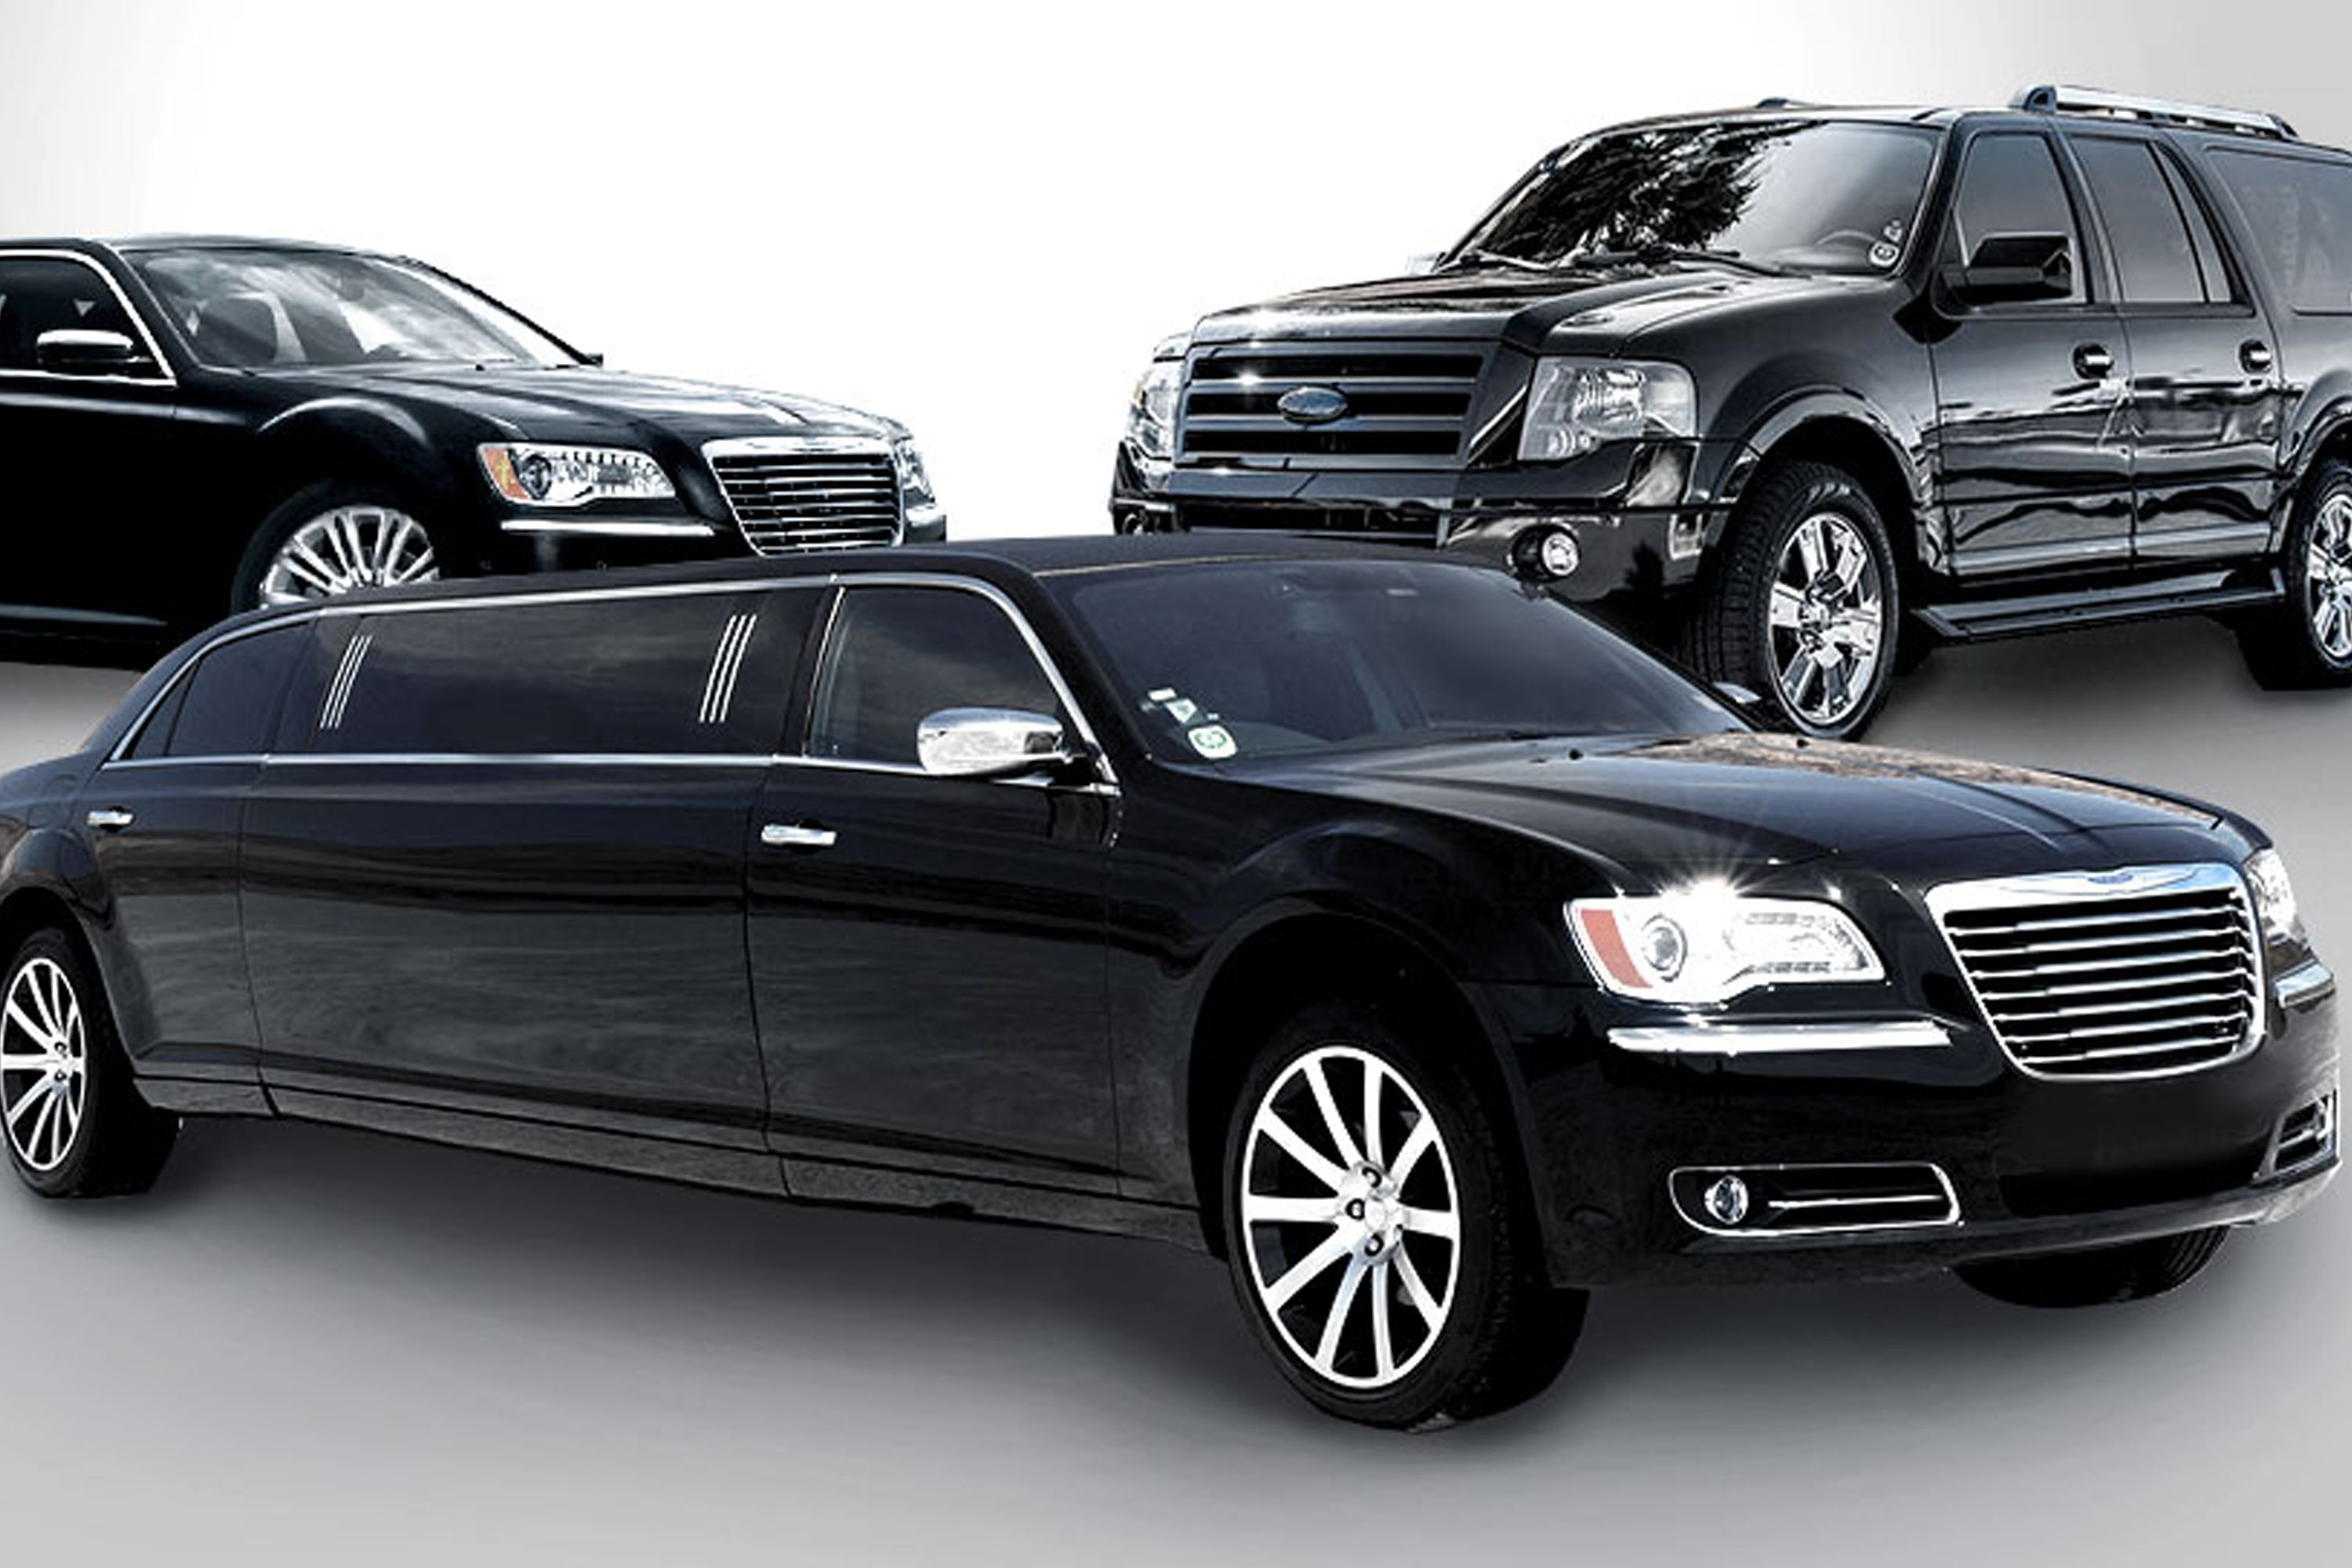 Car Service To Dfw: Airport Limousine Car Services